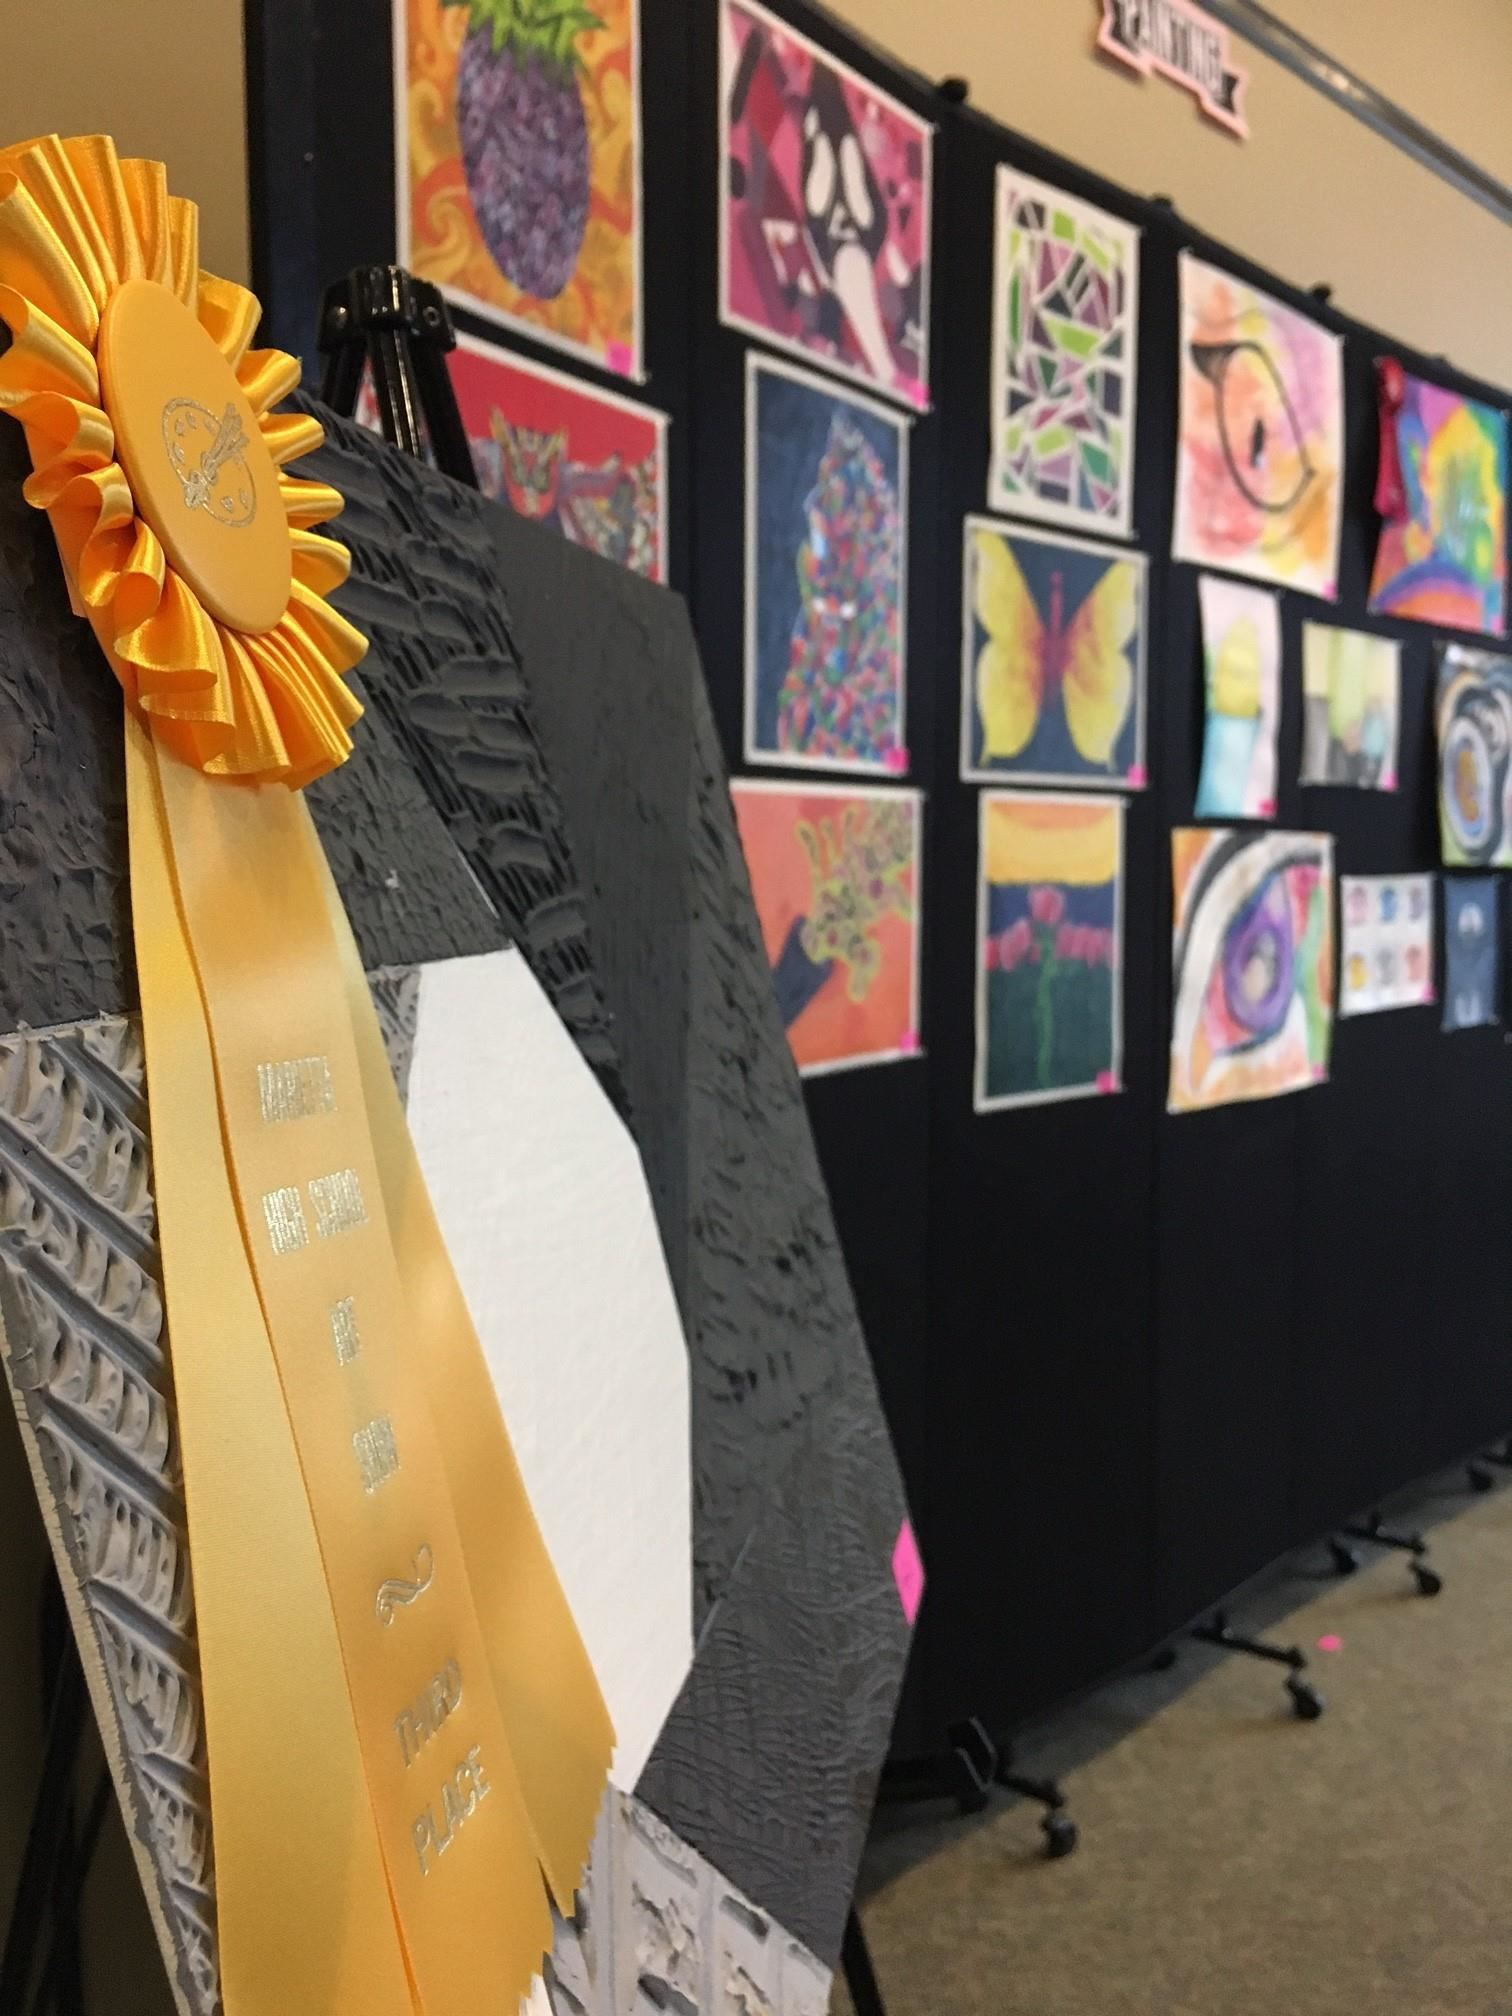 The Marietta High School Art Show Exhibits and Recognizes Students' Exemplary Work